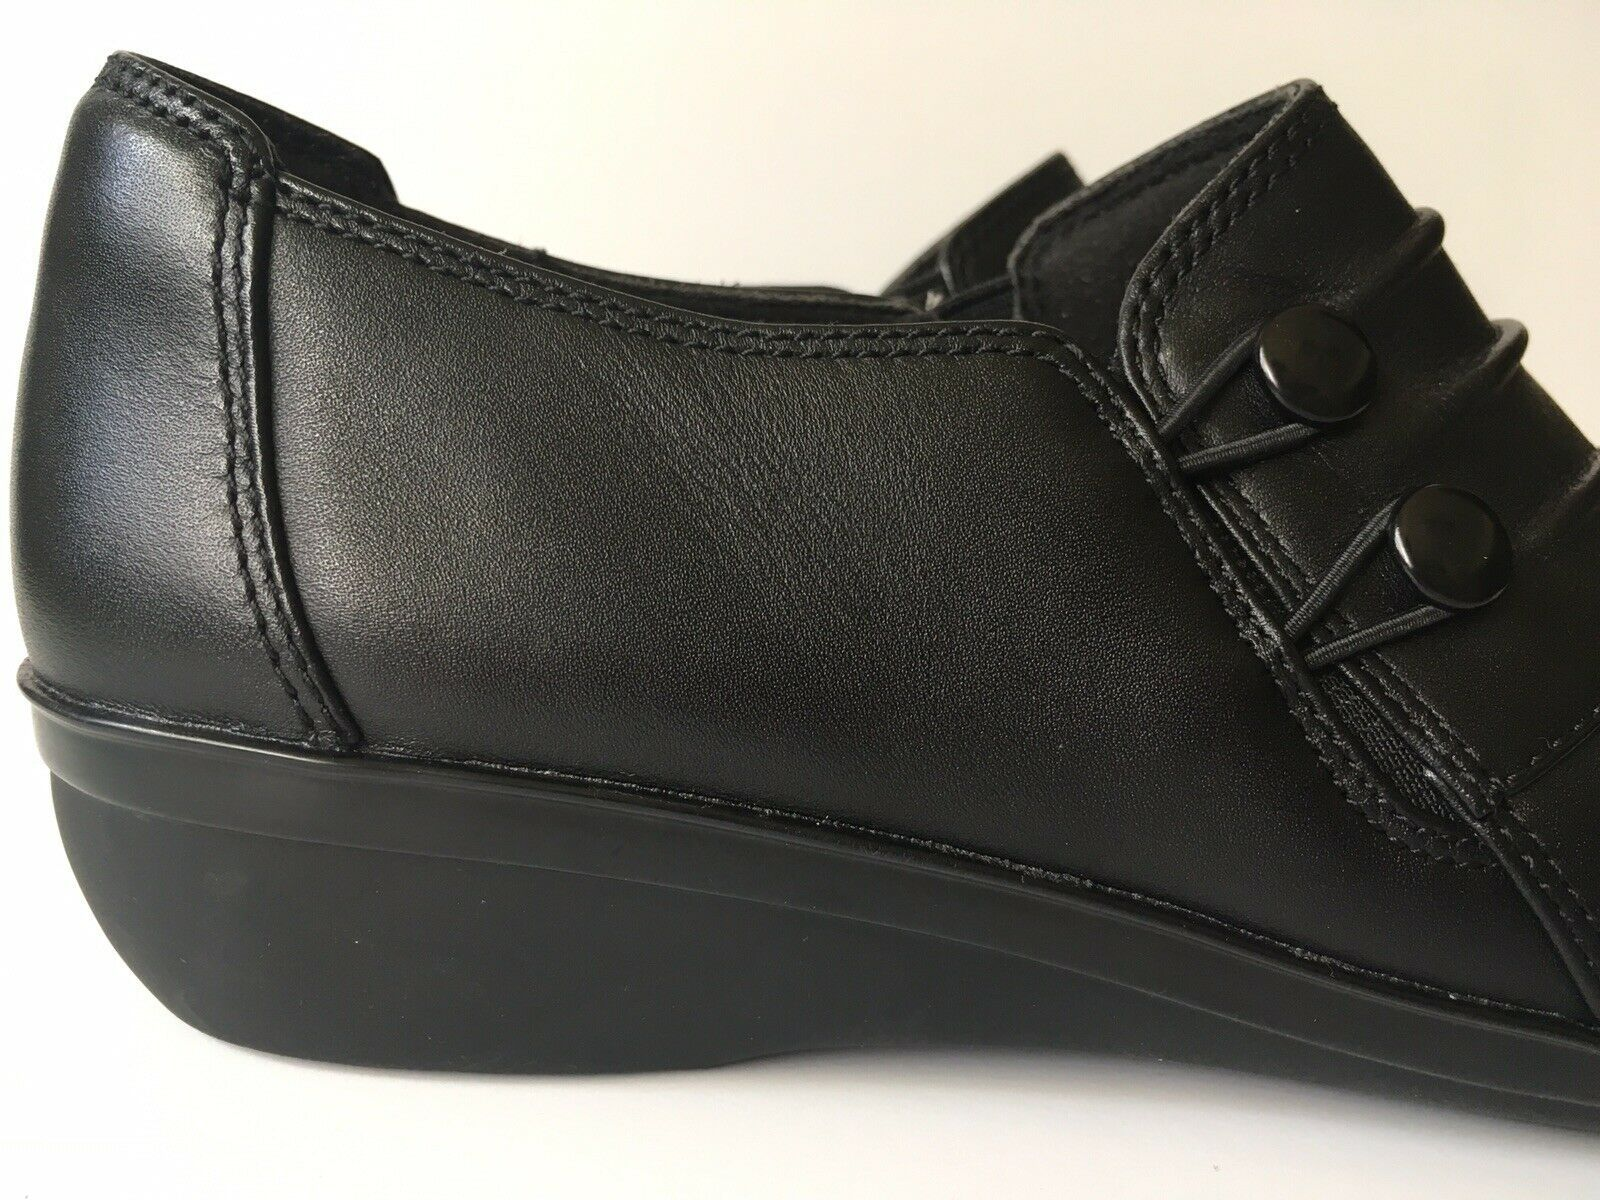 NEW Clarks Womens Soft Cushion Two Button Slip On Loafer Flat Shoes Size 6 Black